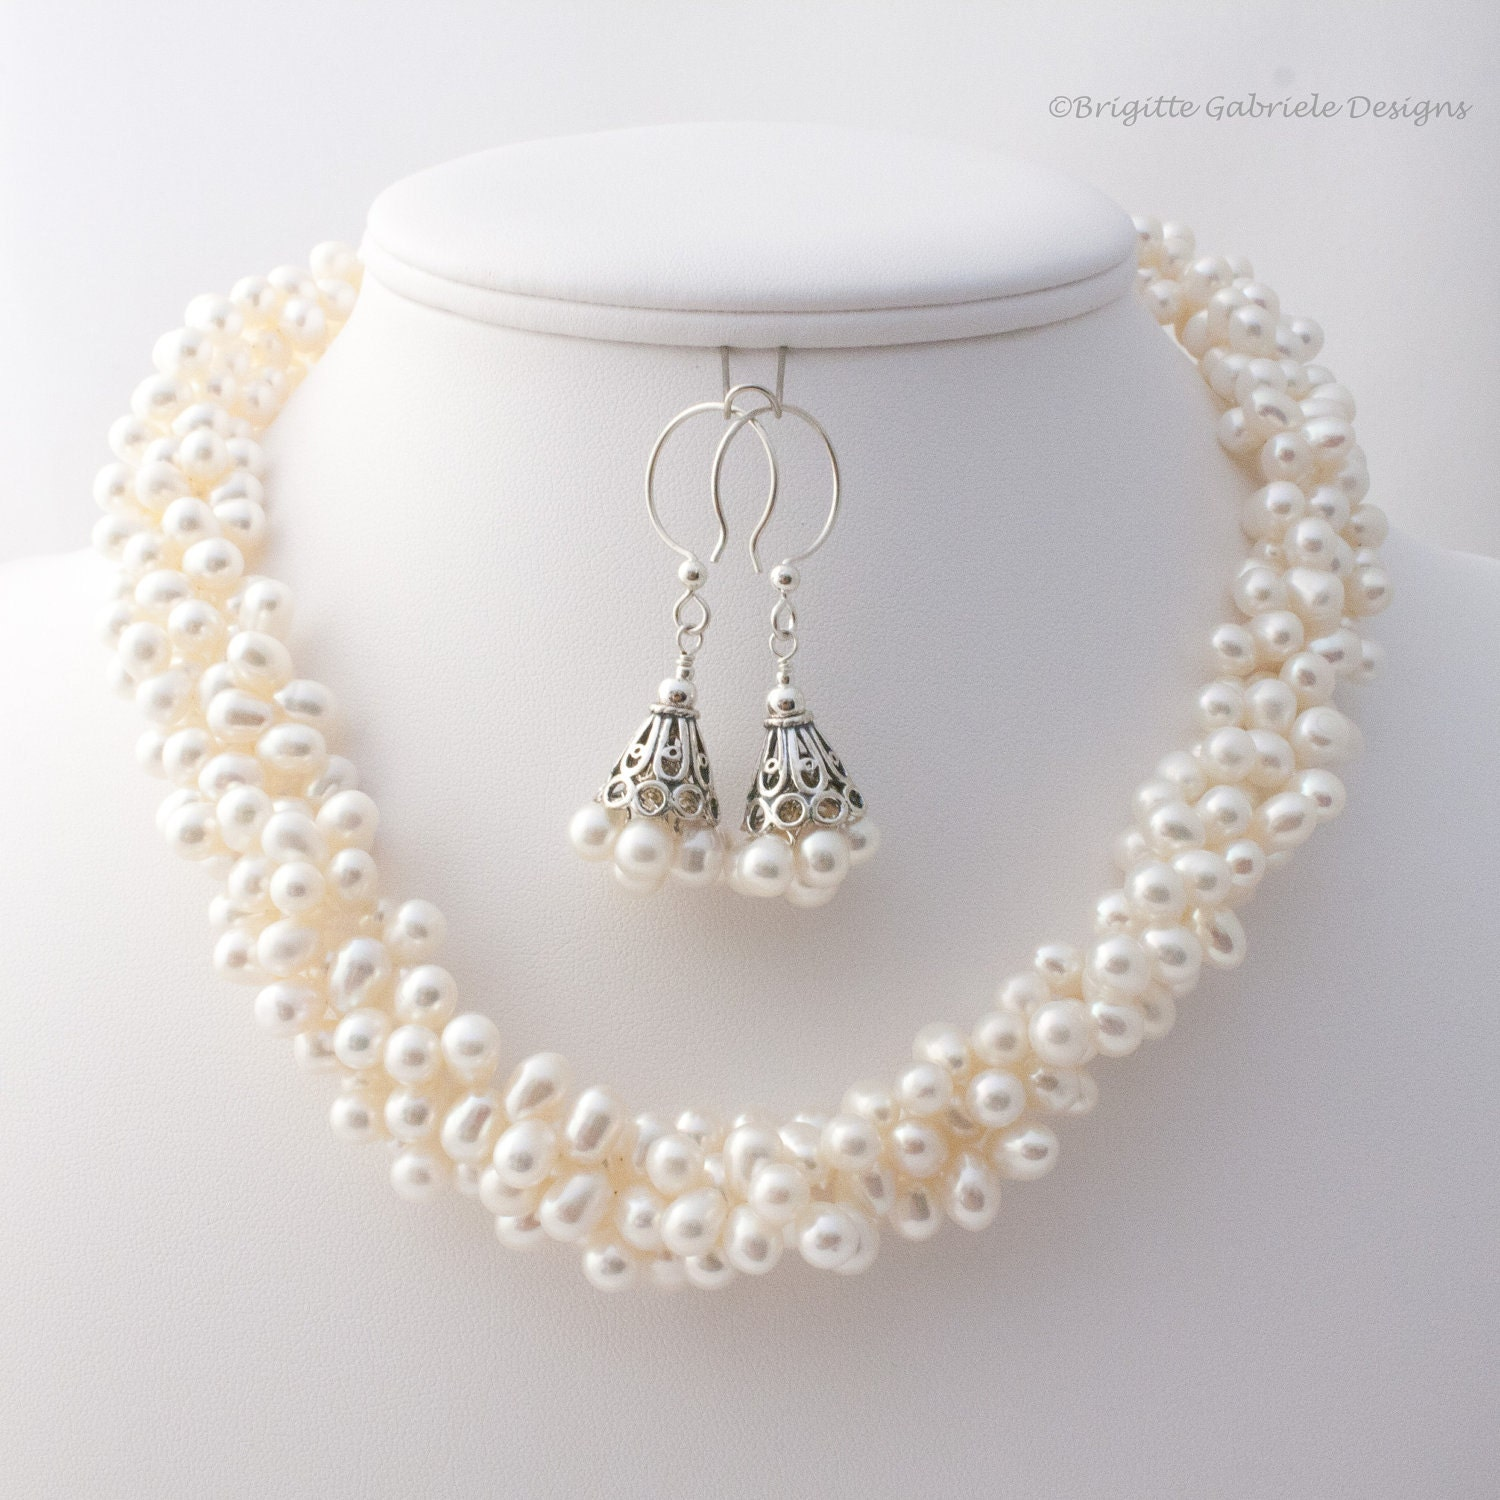 Triple Strand Offwhite Pearl Necklace, Adjustable Length Pearl Necklace